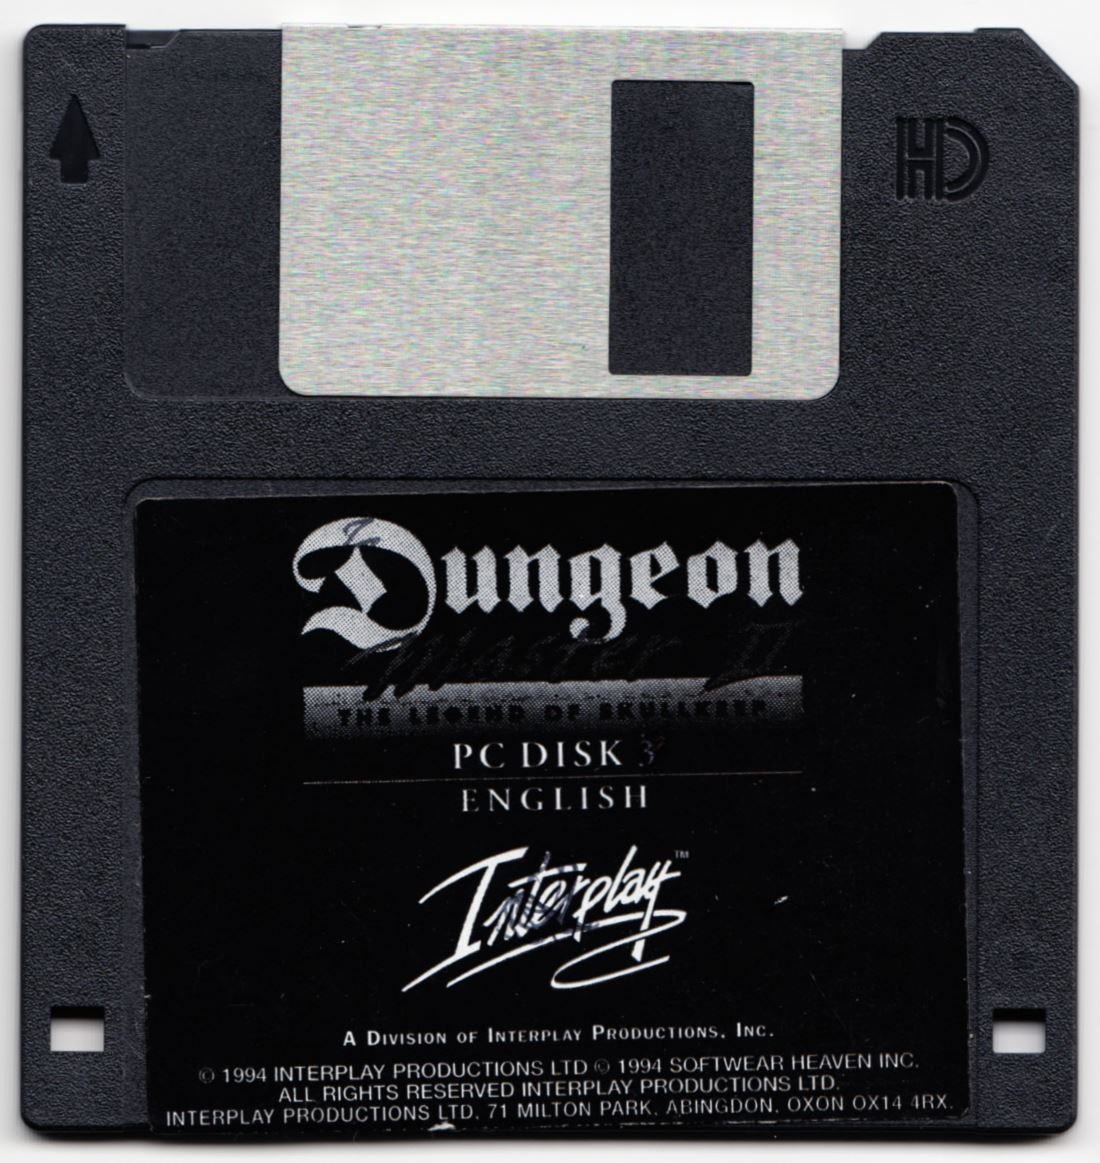 Game - Dungeon Master II - UK - PC - Floppy Version - Disk 3 - Front - Scan